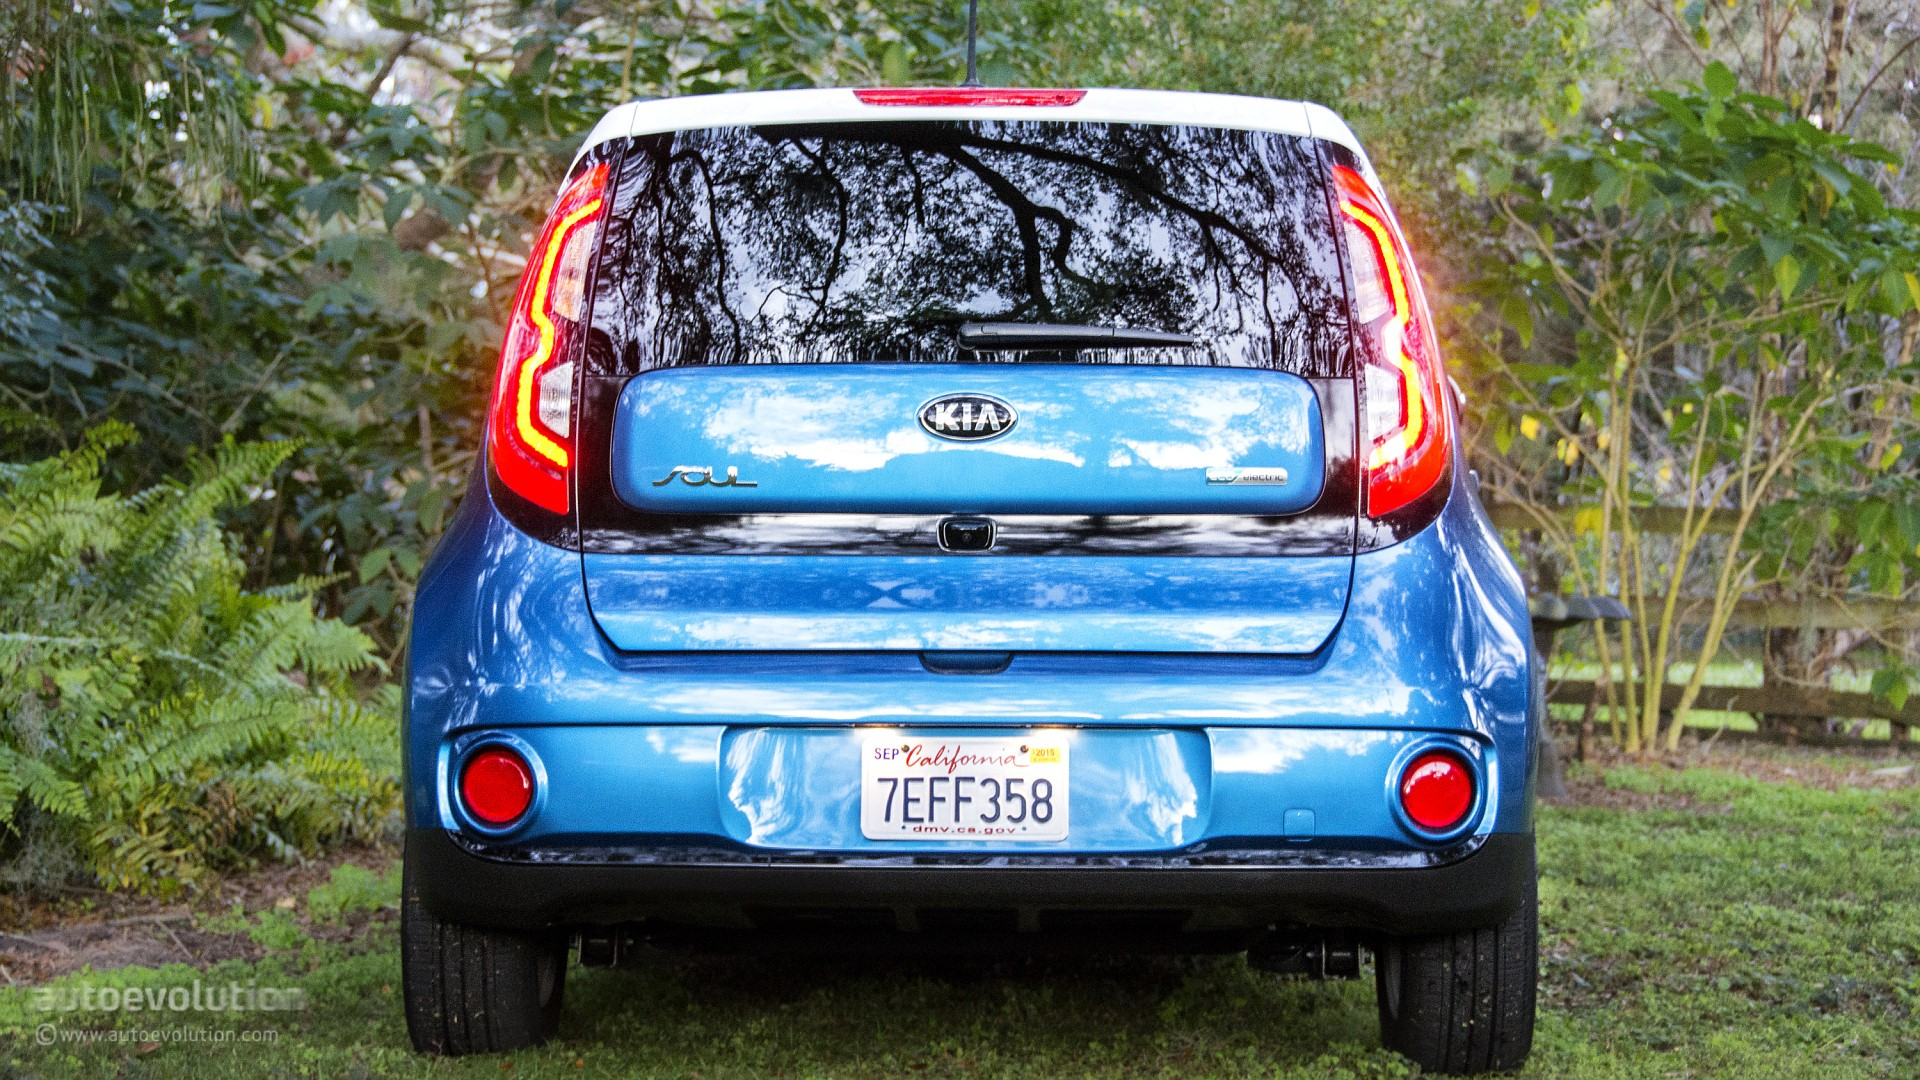 kia el view spotted spy first surfaced showing next tests new formacar photos have road generation prototype blue the online during soul news